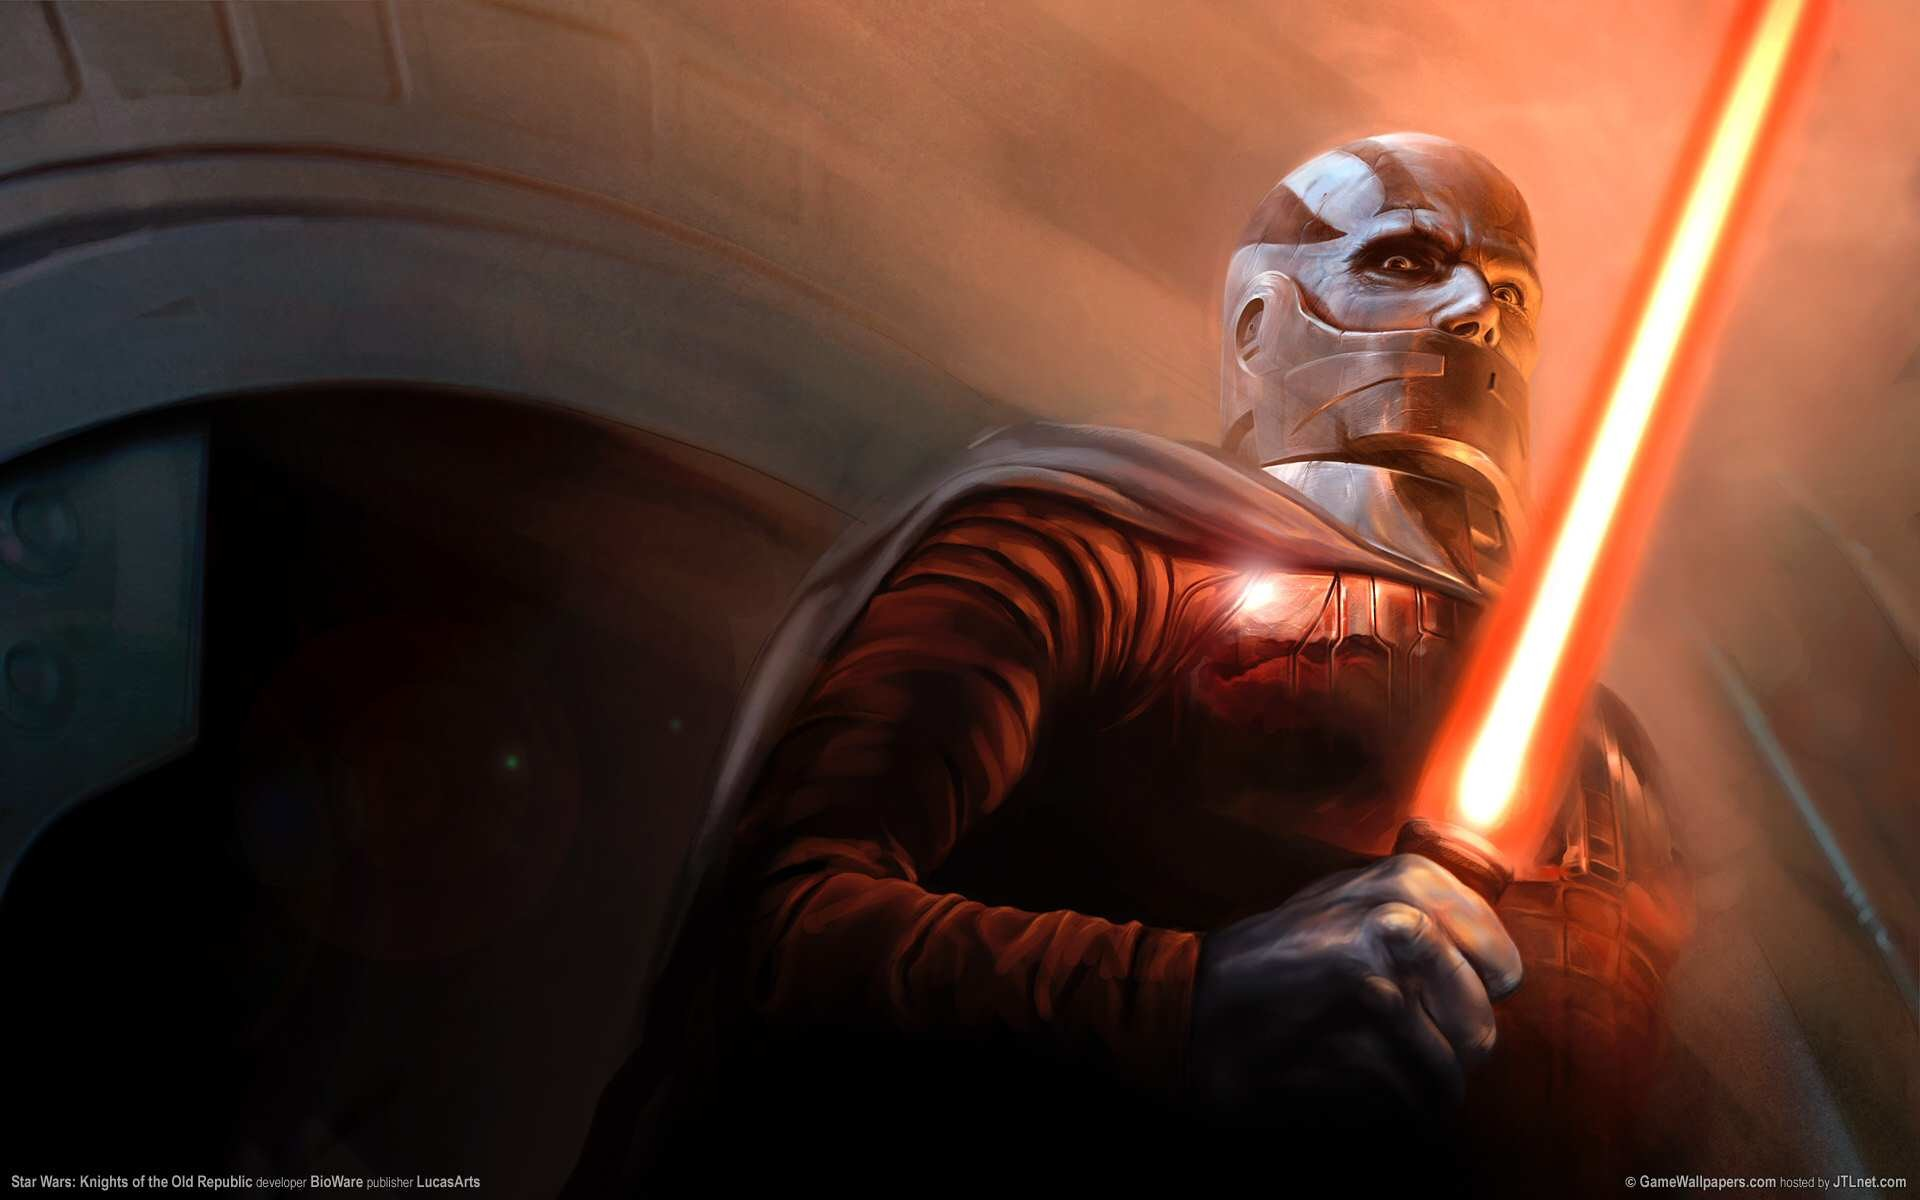 1920x1200 Star Wars The Old Republic wallpaper - 473850